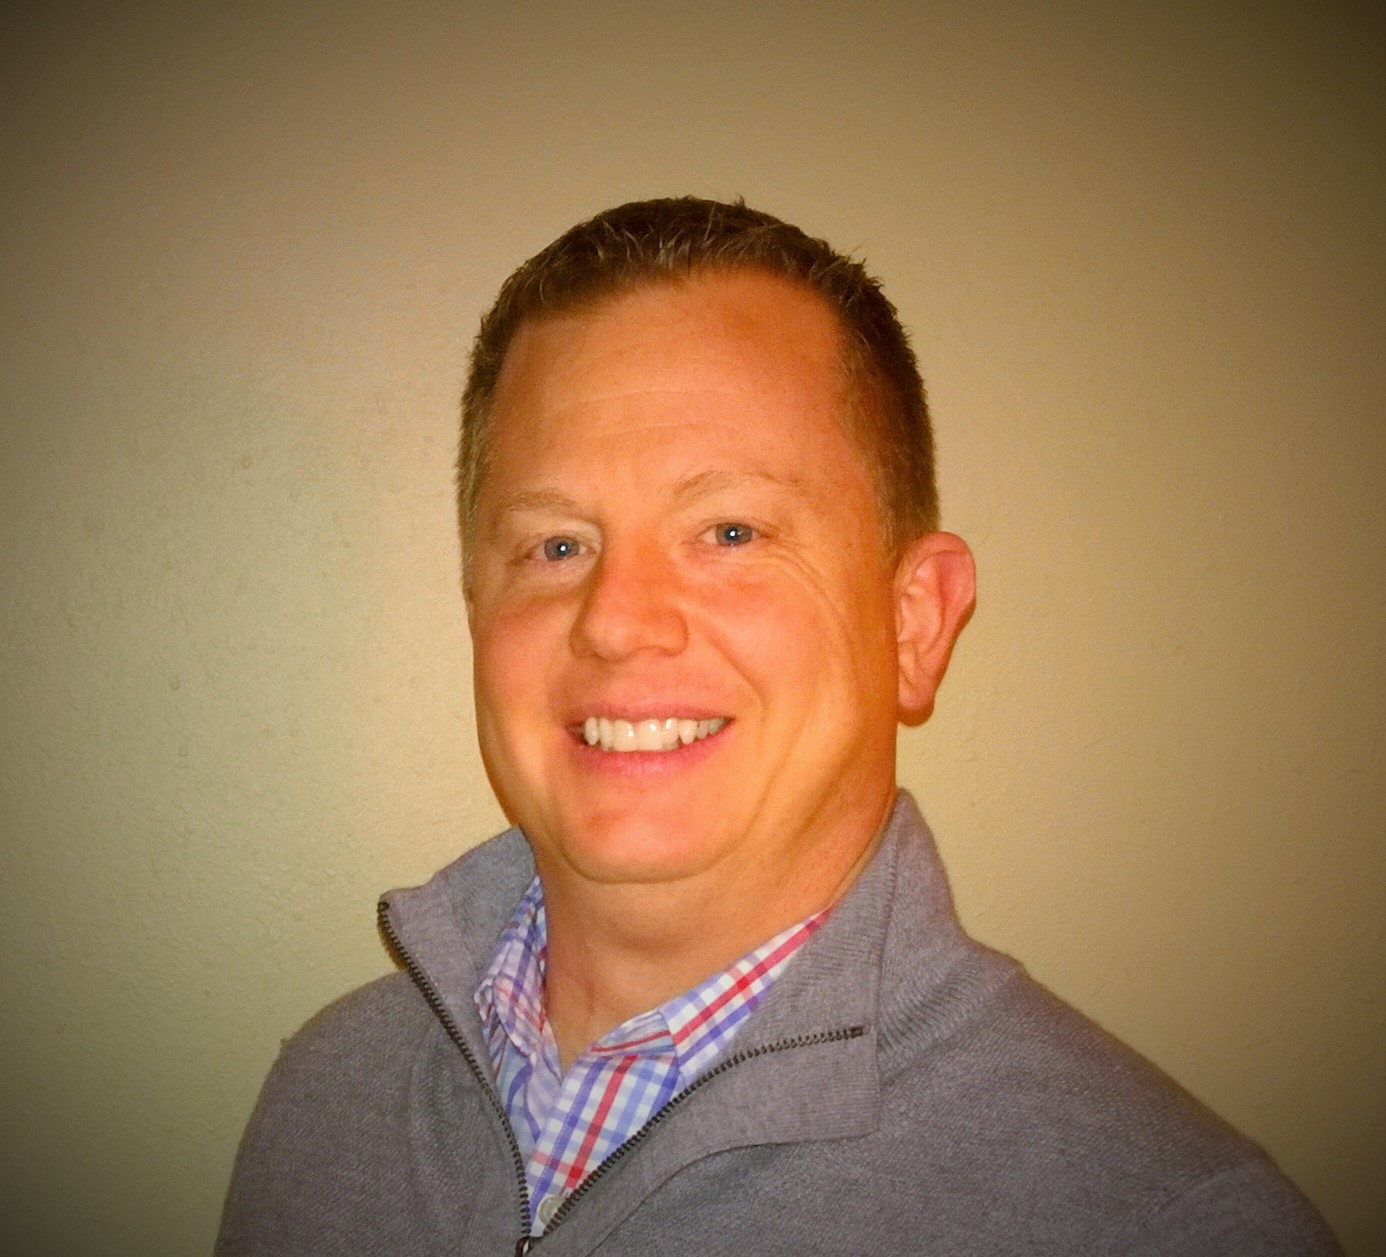 Jason Norlin, Board Chair, pictured above.